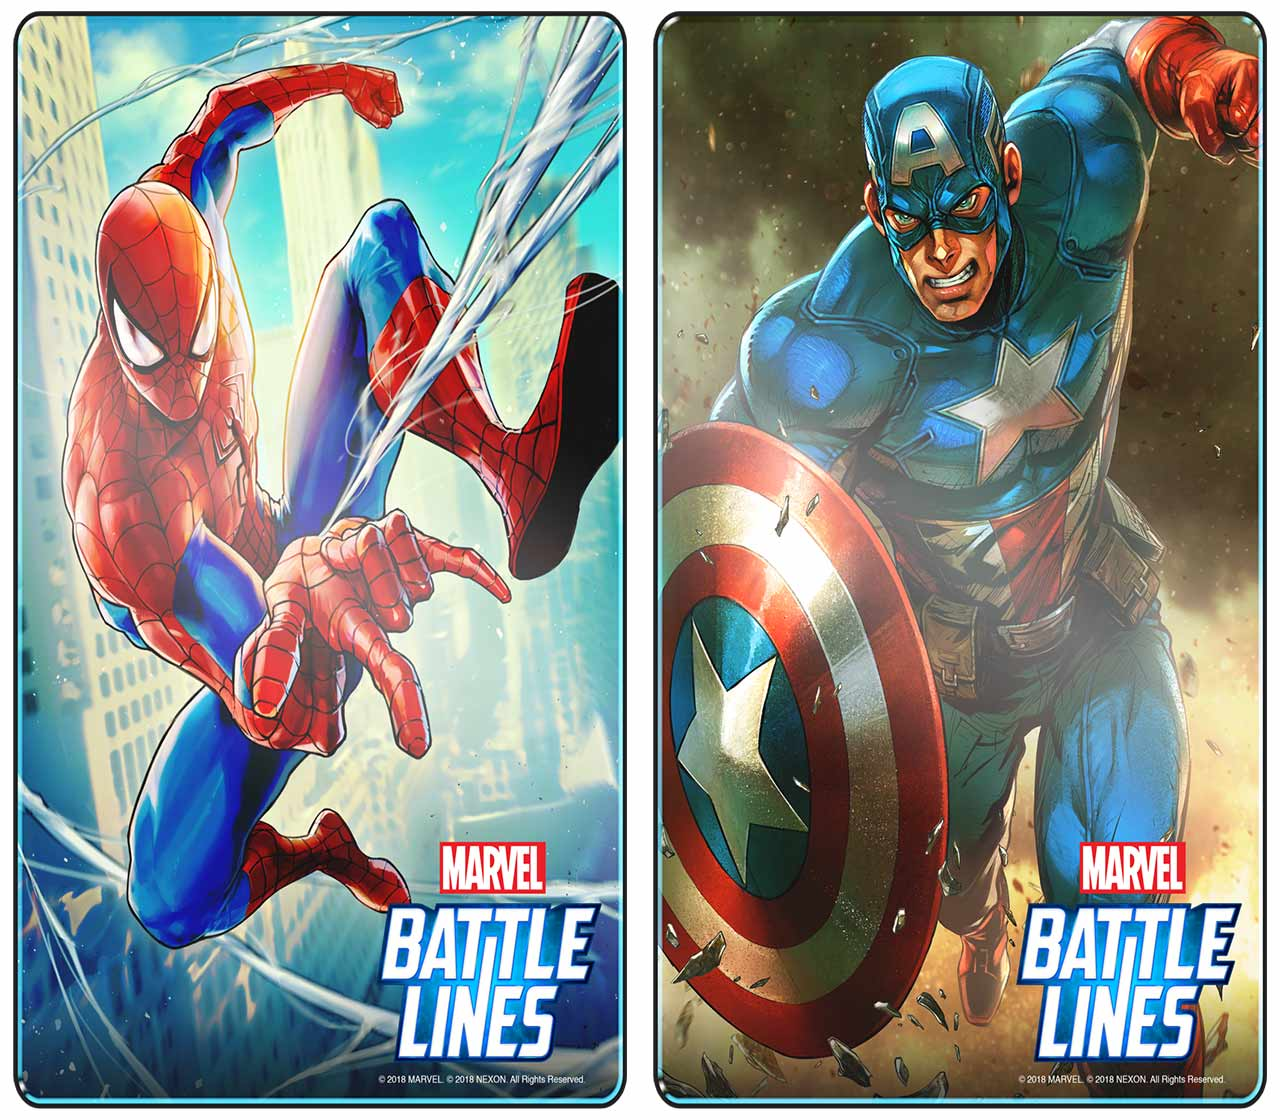 Marvel Battle Lines Spider-Man and Captain America